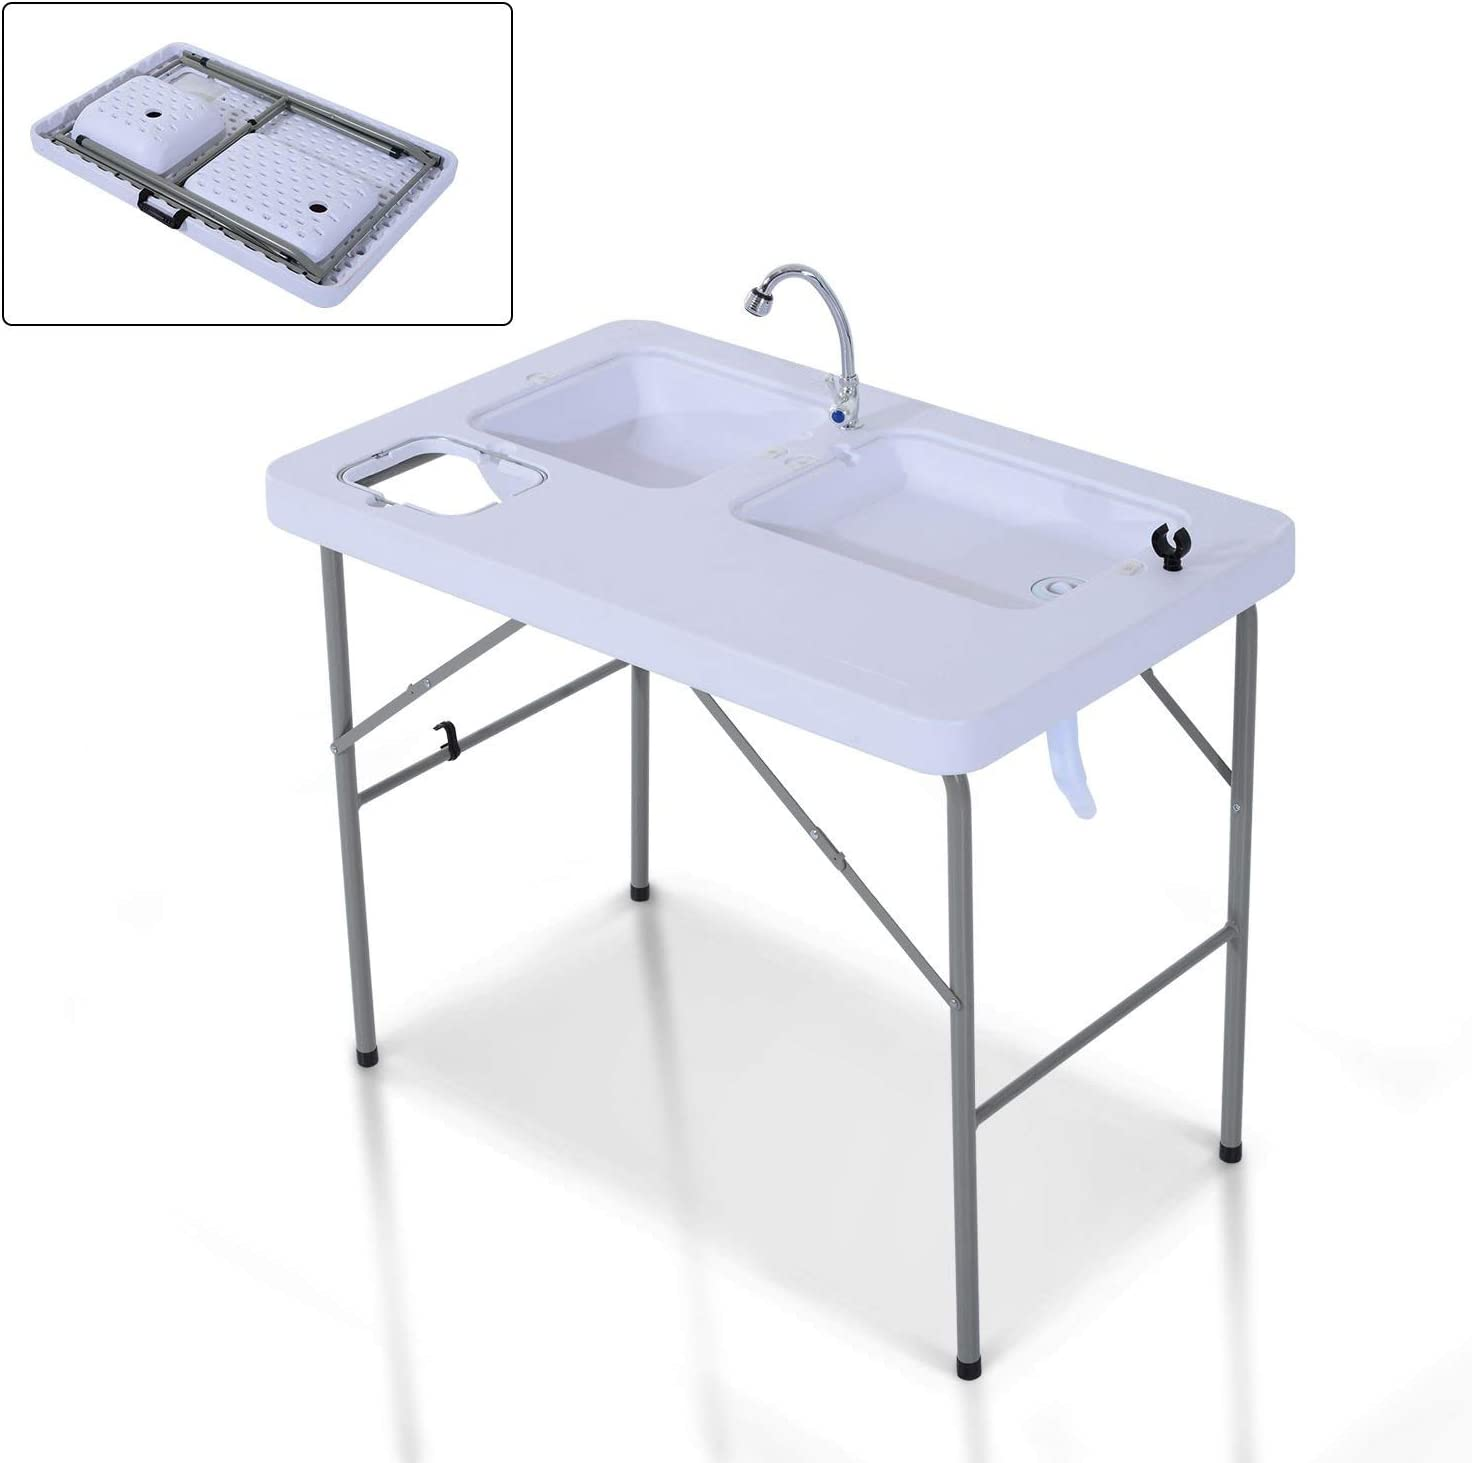 White /& Grey Kitchen Godyluck Portable Folding Camping Table with Faucet in HDPE and Steel//Weight Capacity 132 LBS